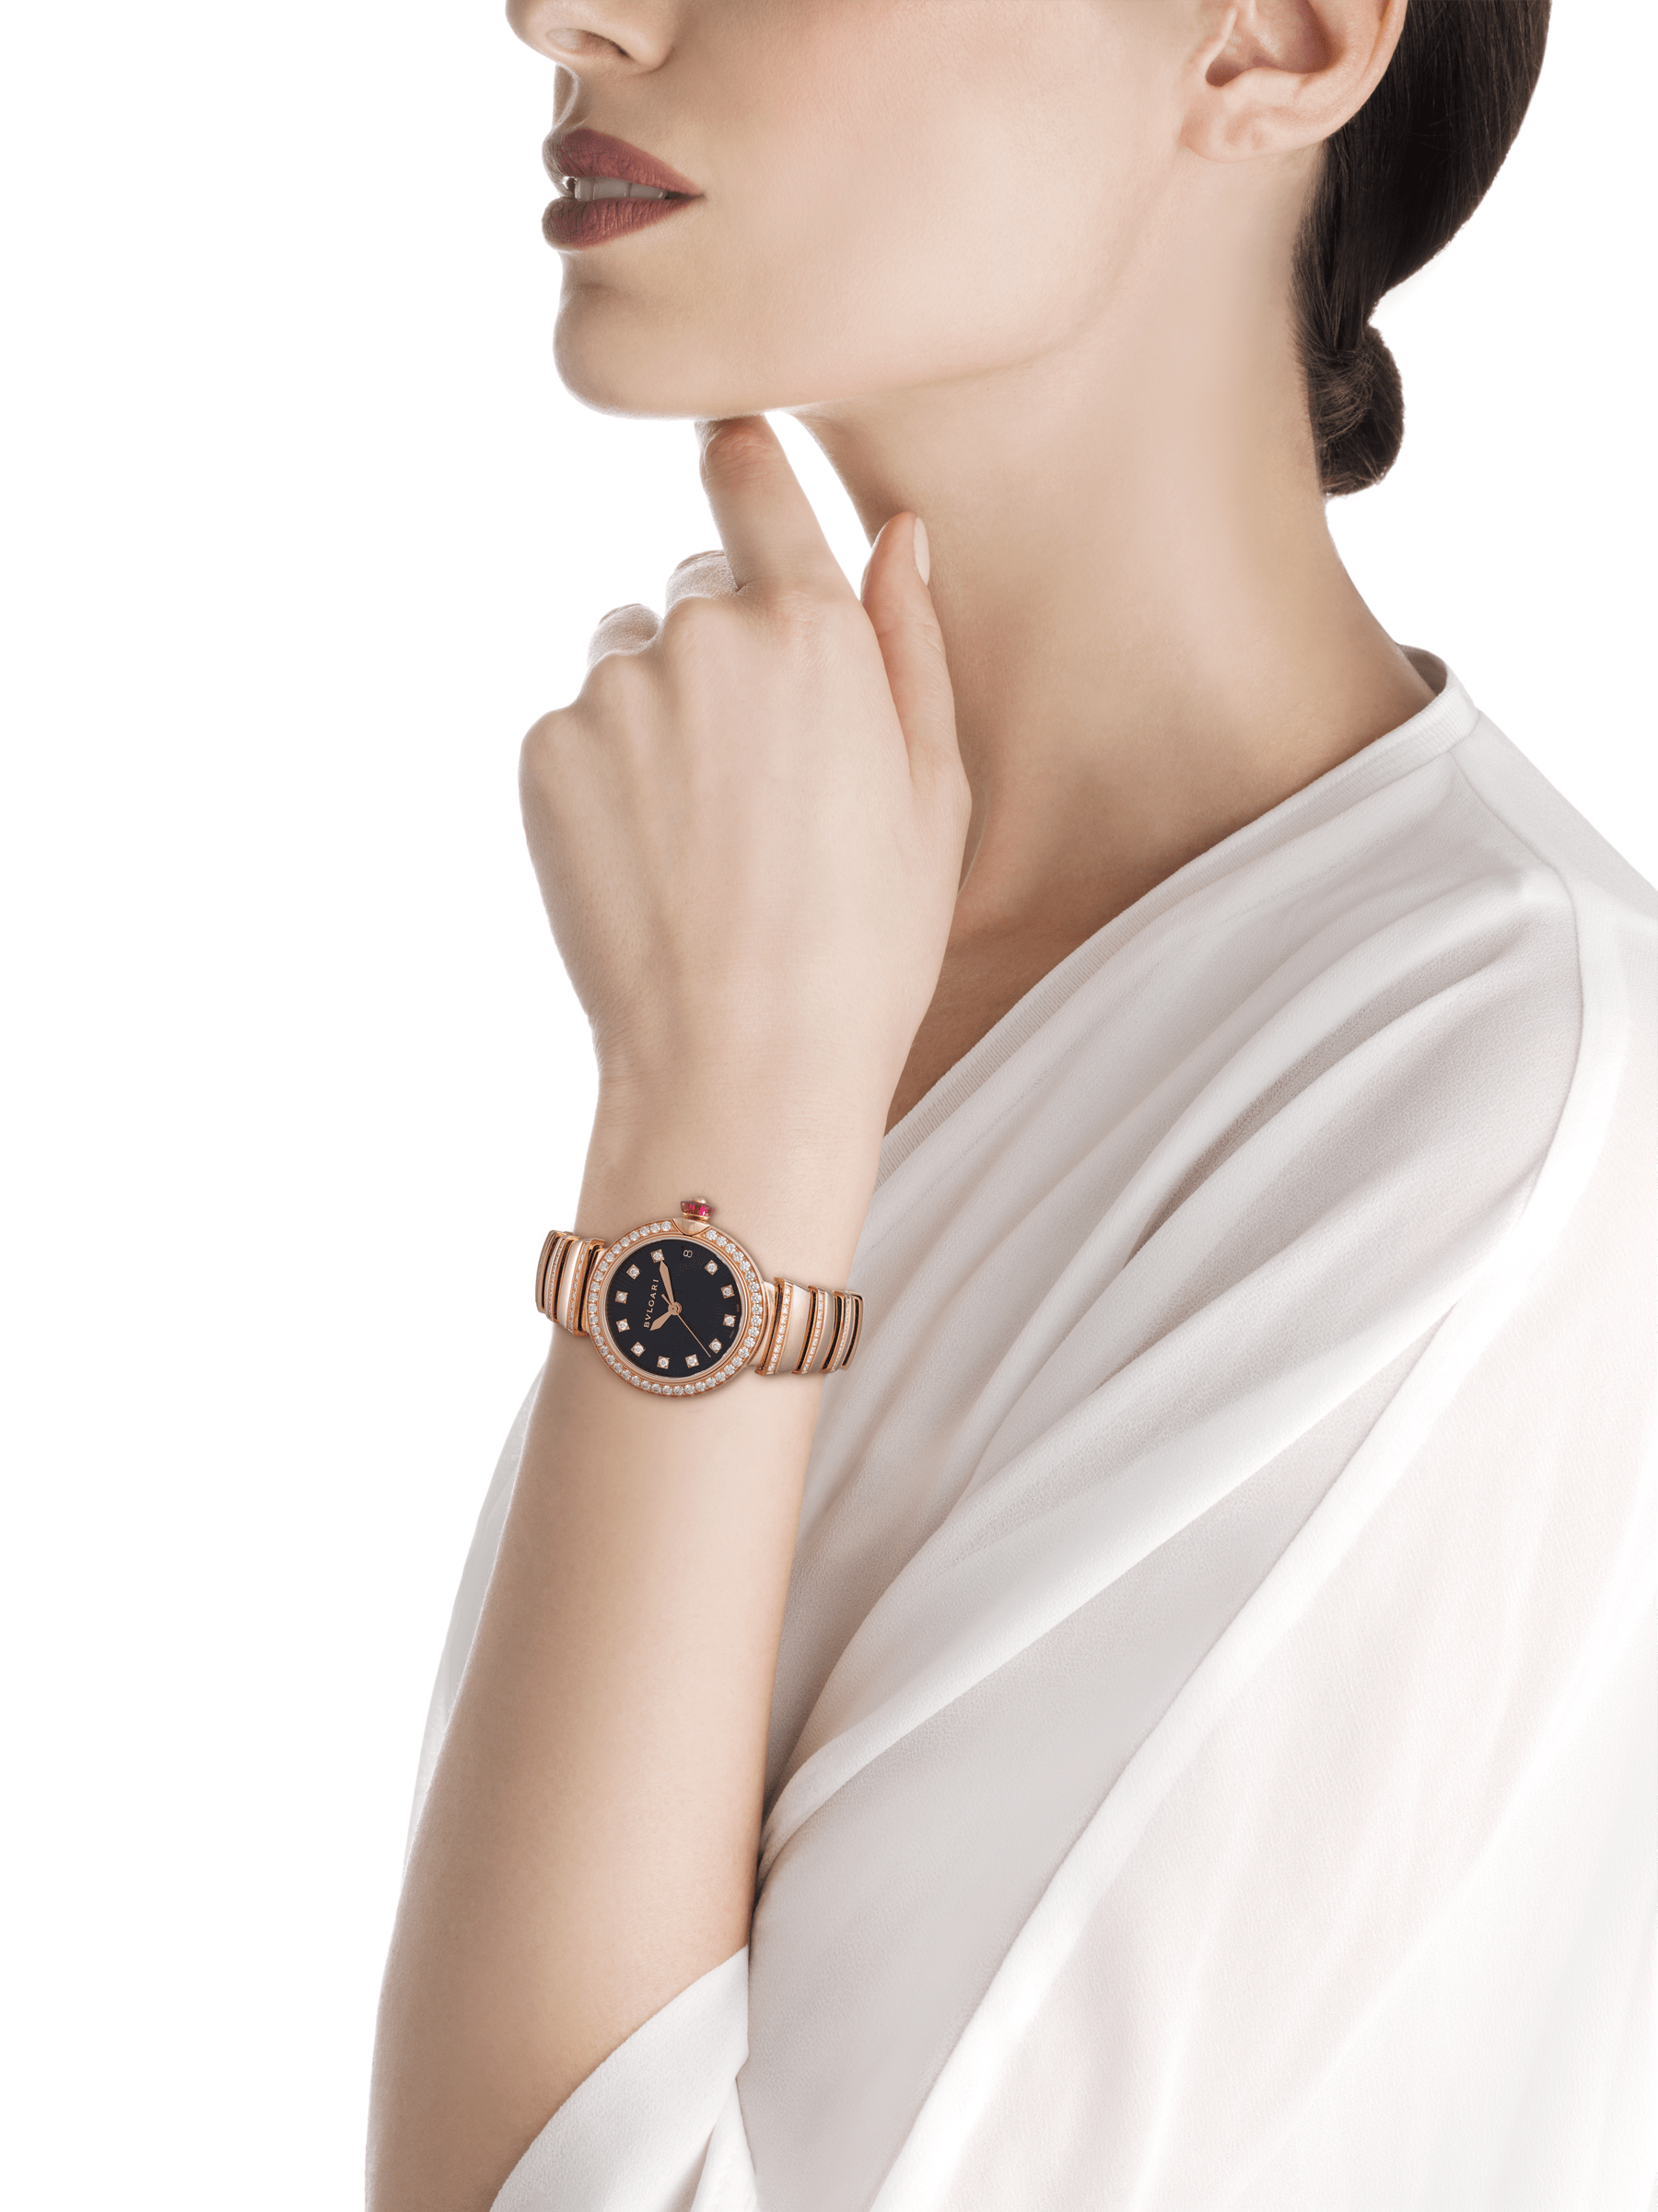 LVCEA watch in 18 kt rose gold and brilliant-cut diamond case and bracelet, with black opaline dial. 102191 image 6